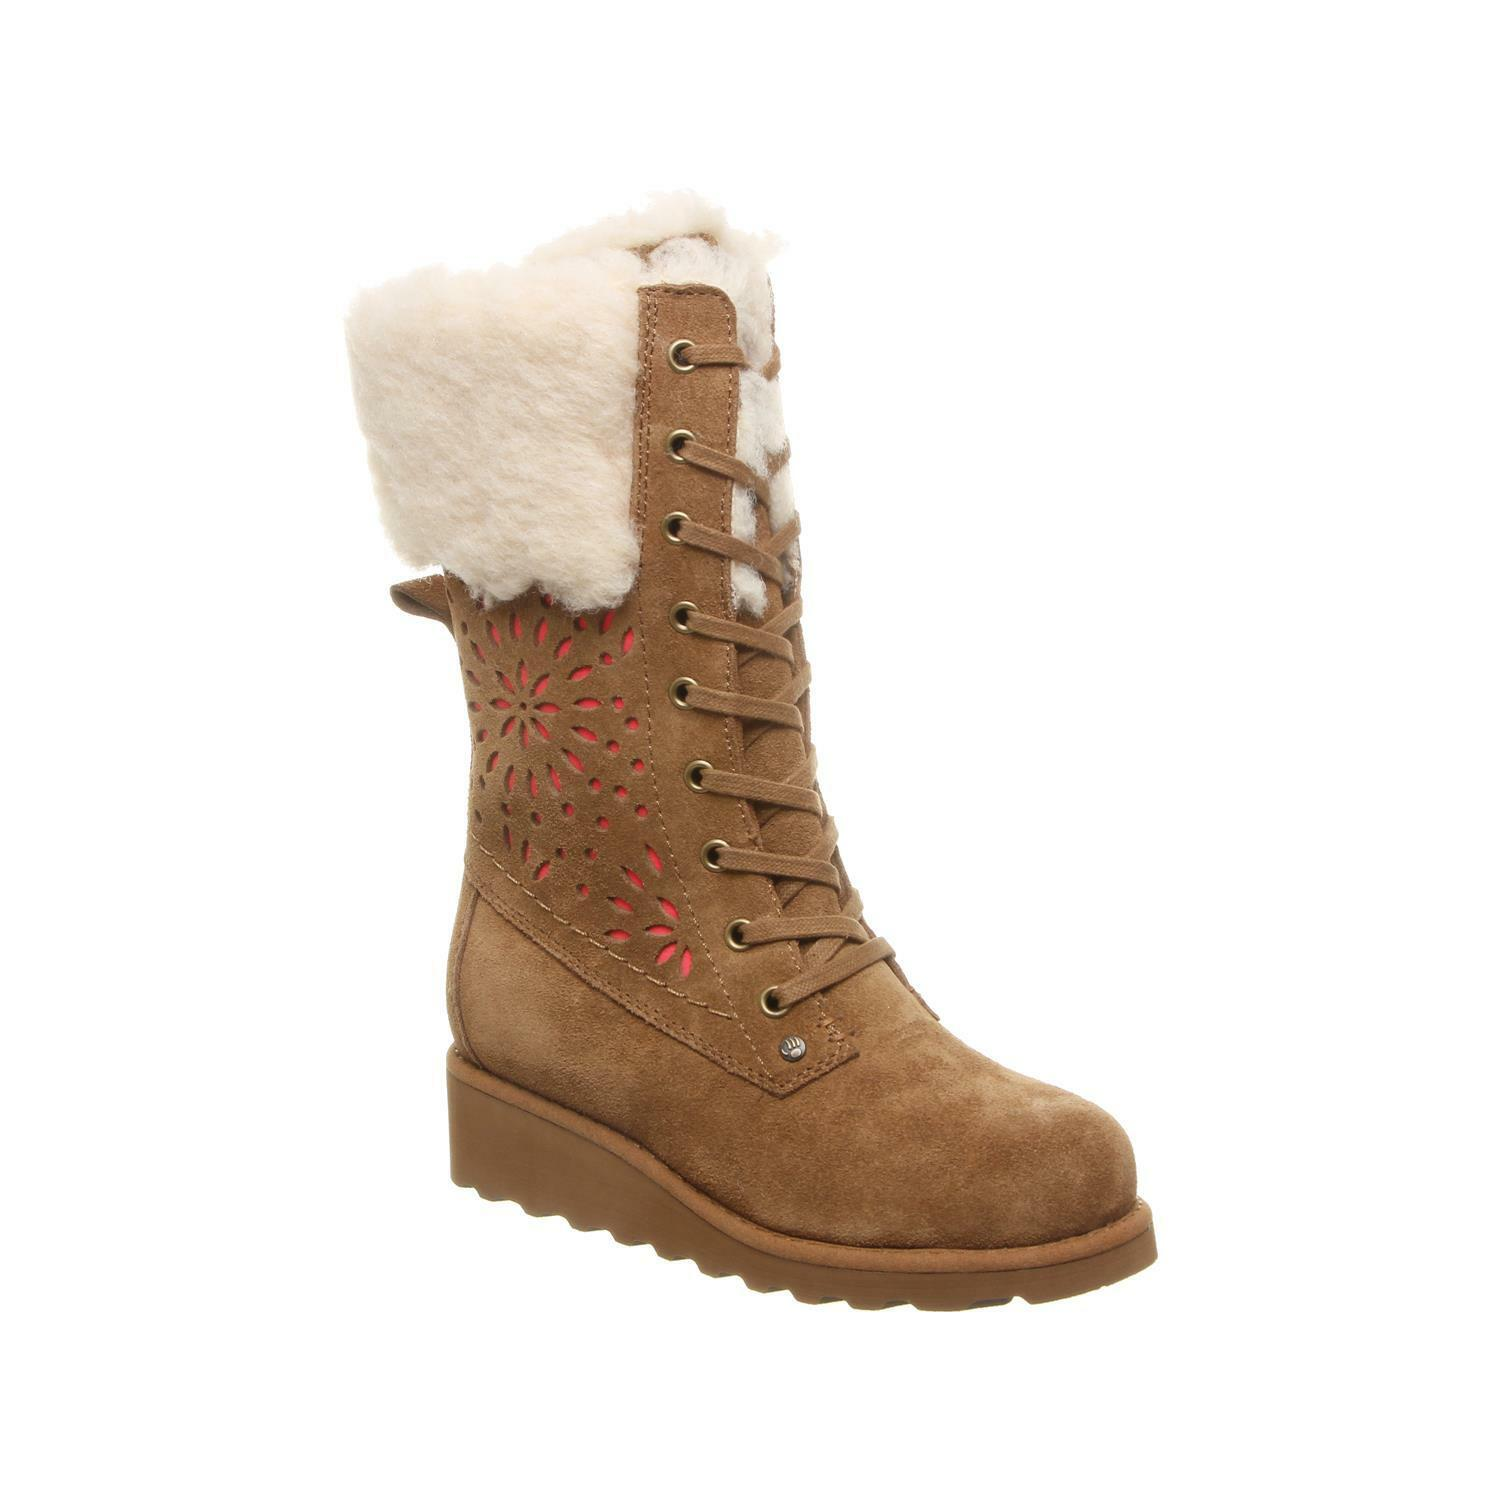 Bearpaw Kylie Youth 9 Inch Kids' Boot 2144y Hickory 3 M Us Little Kid